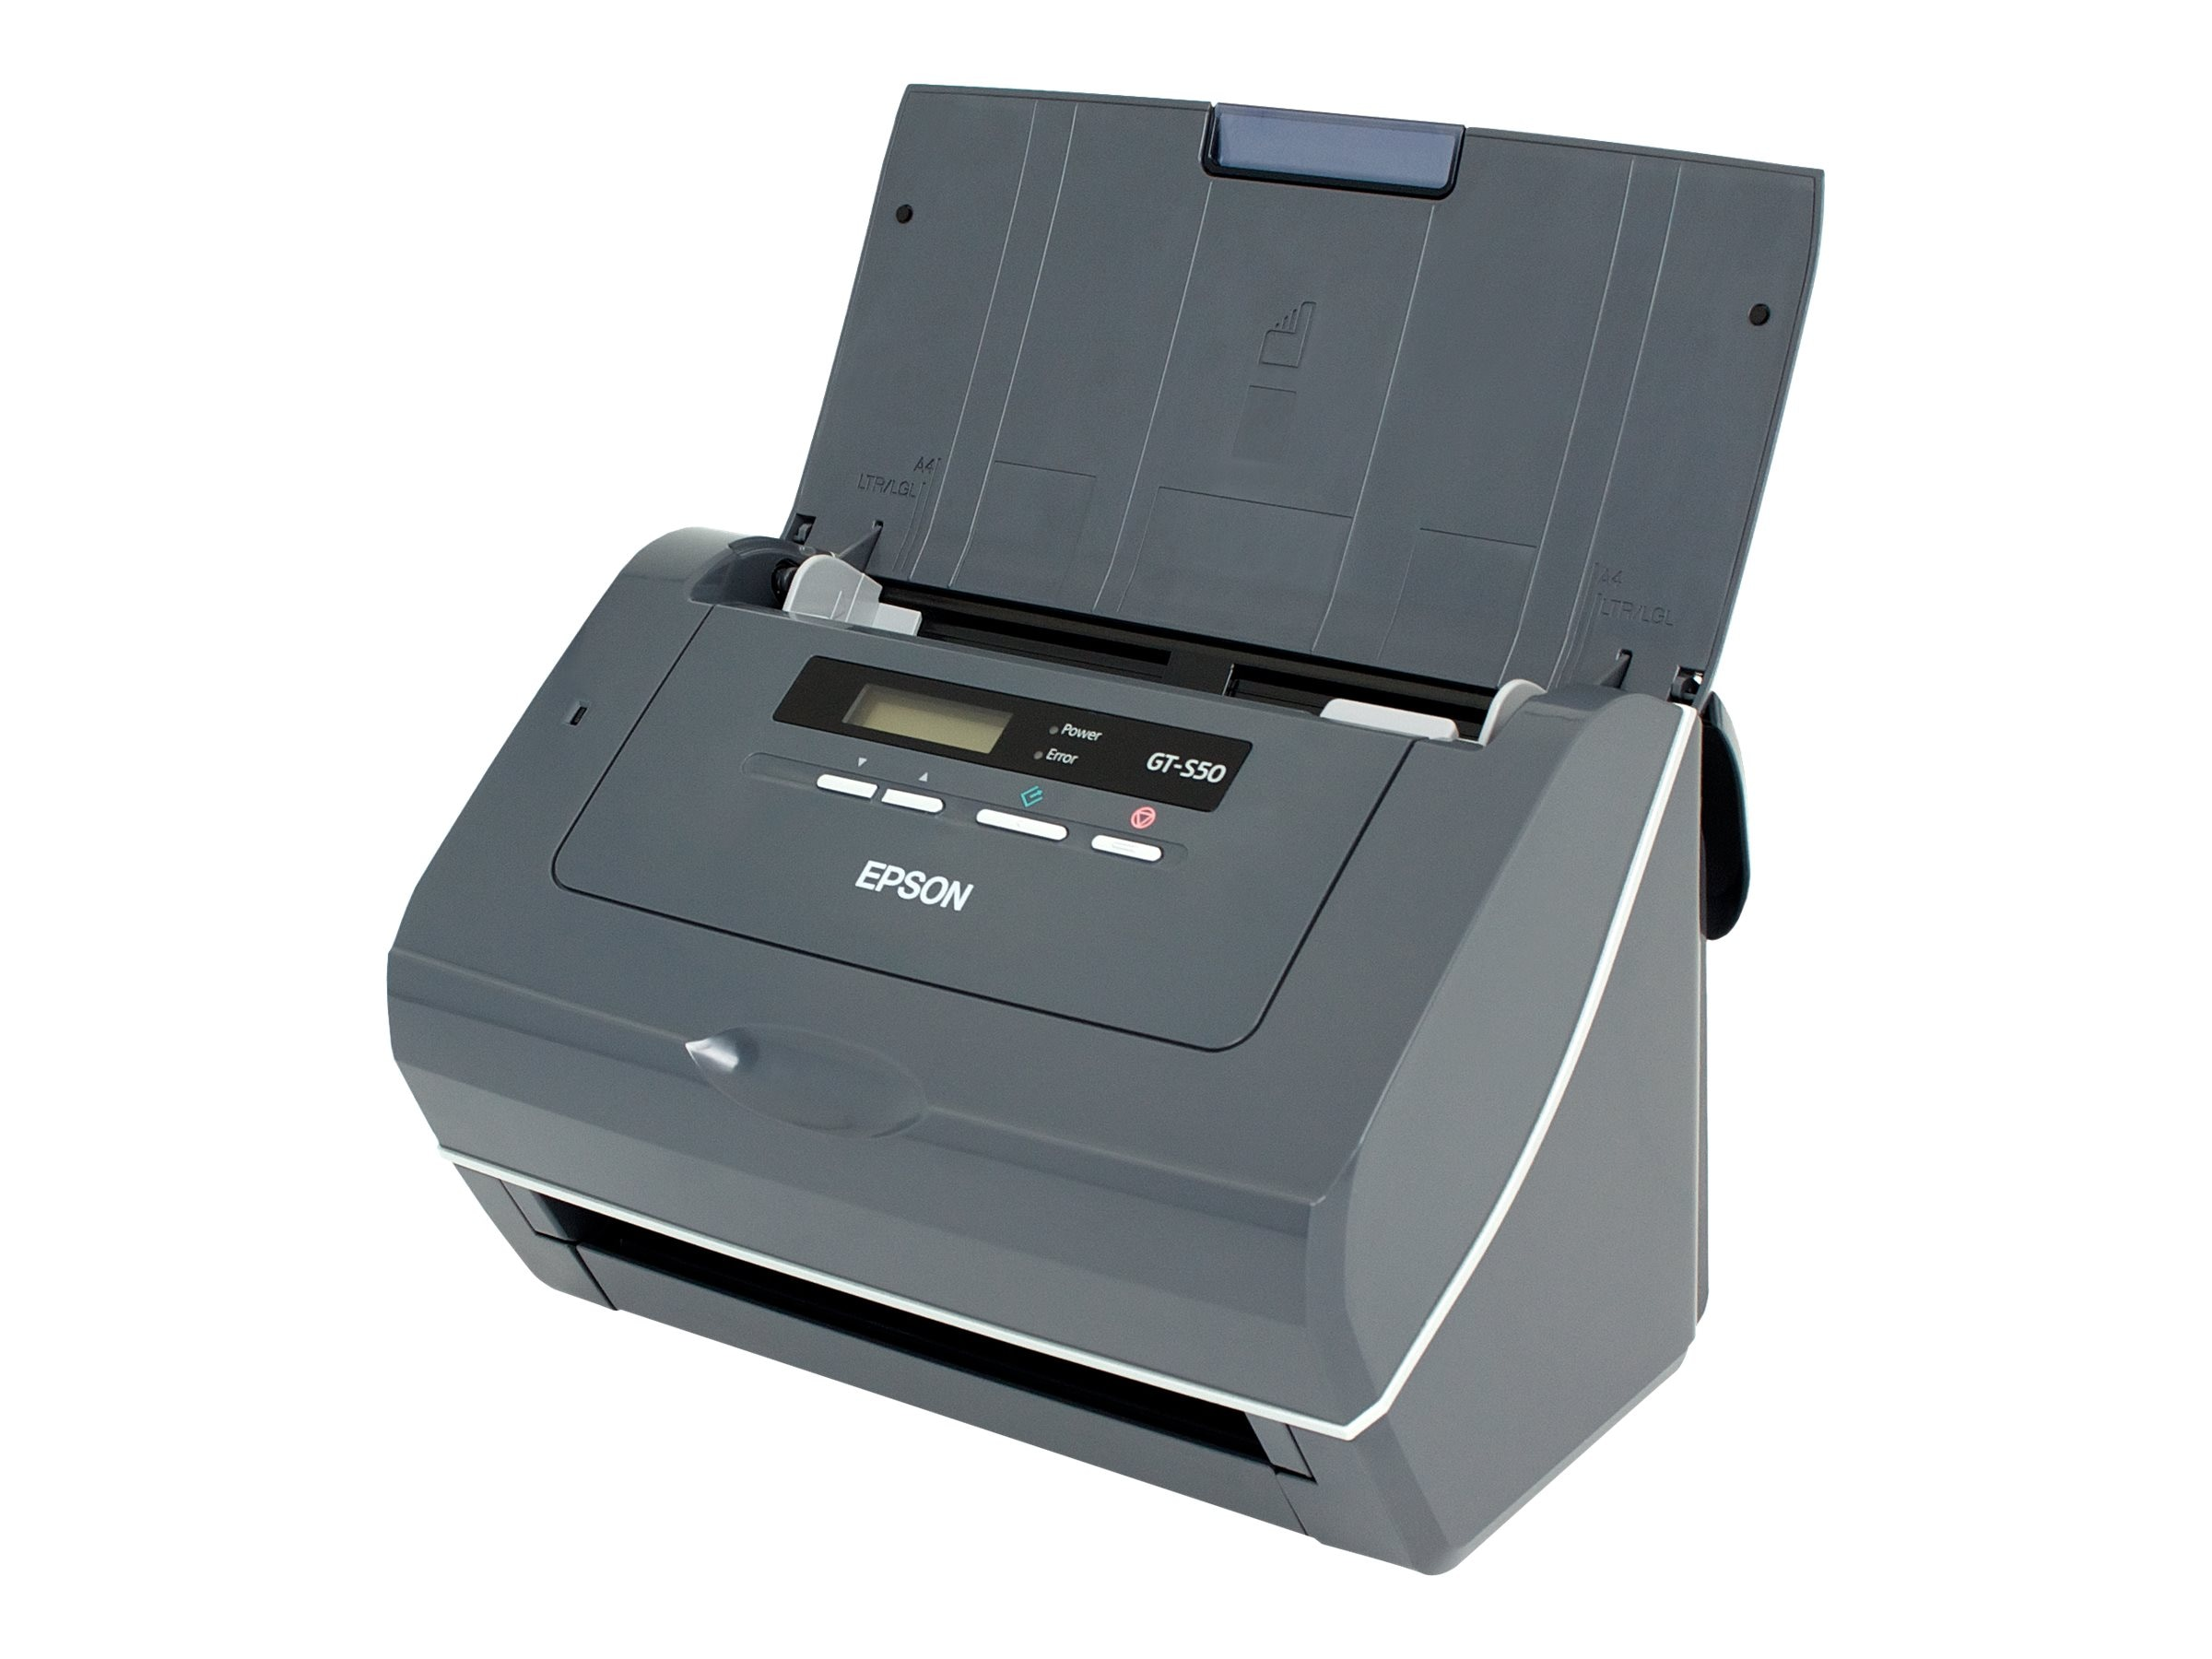 Epson WorkForce Pro GT-S50 Scanner, B11B194011